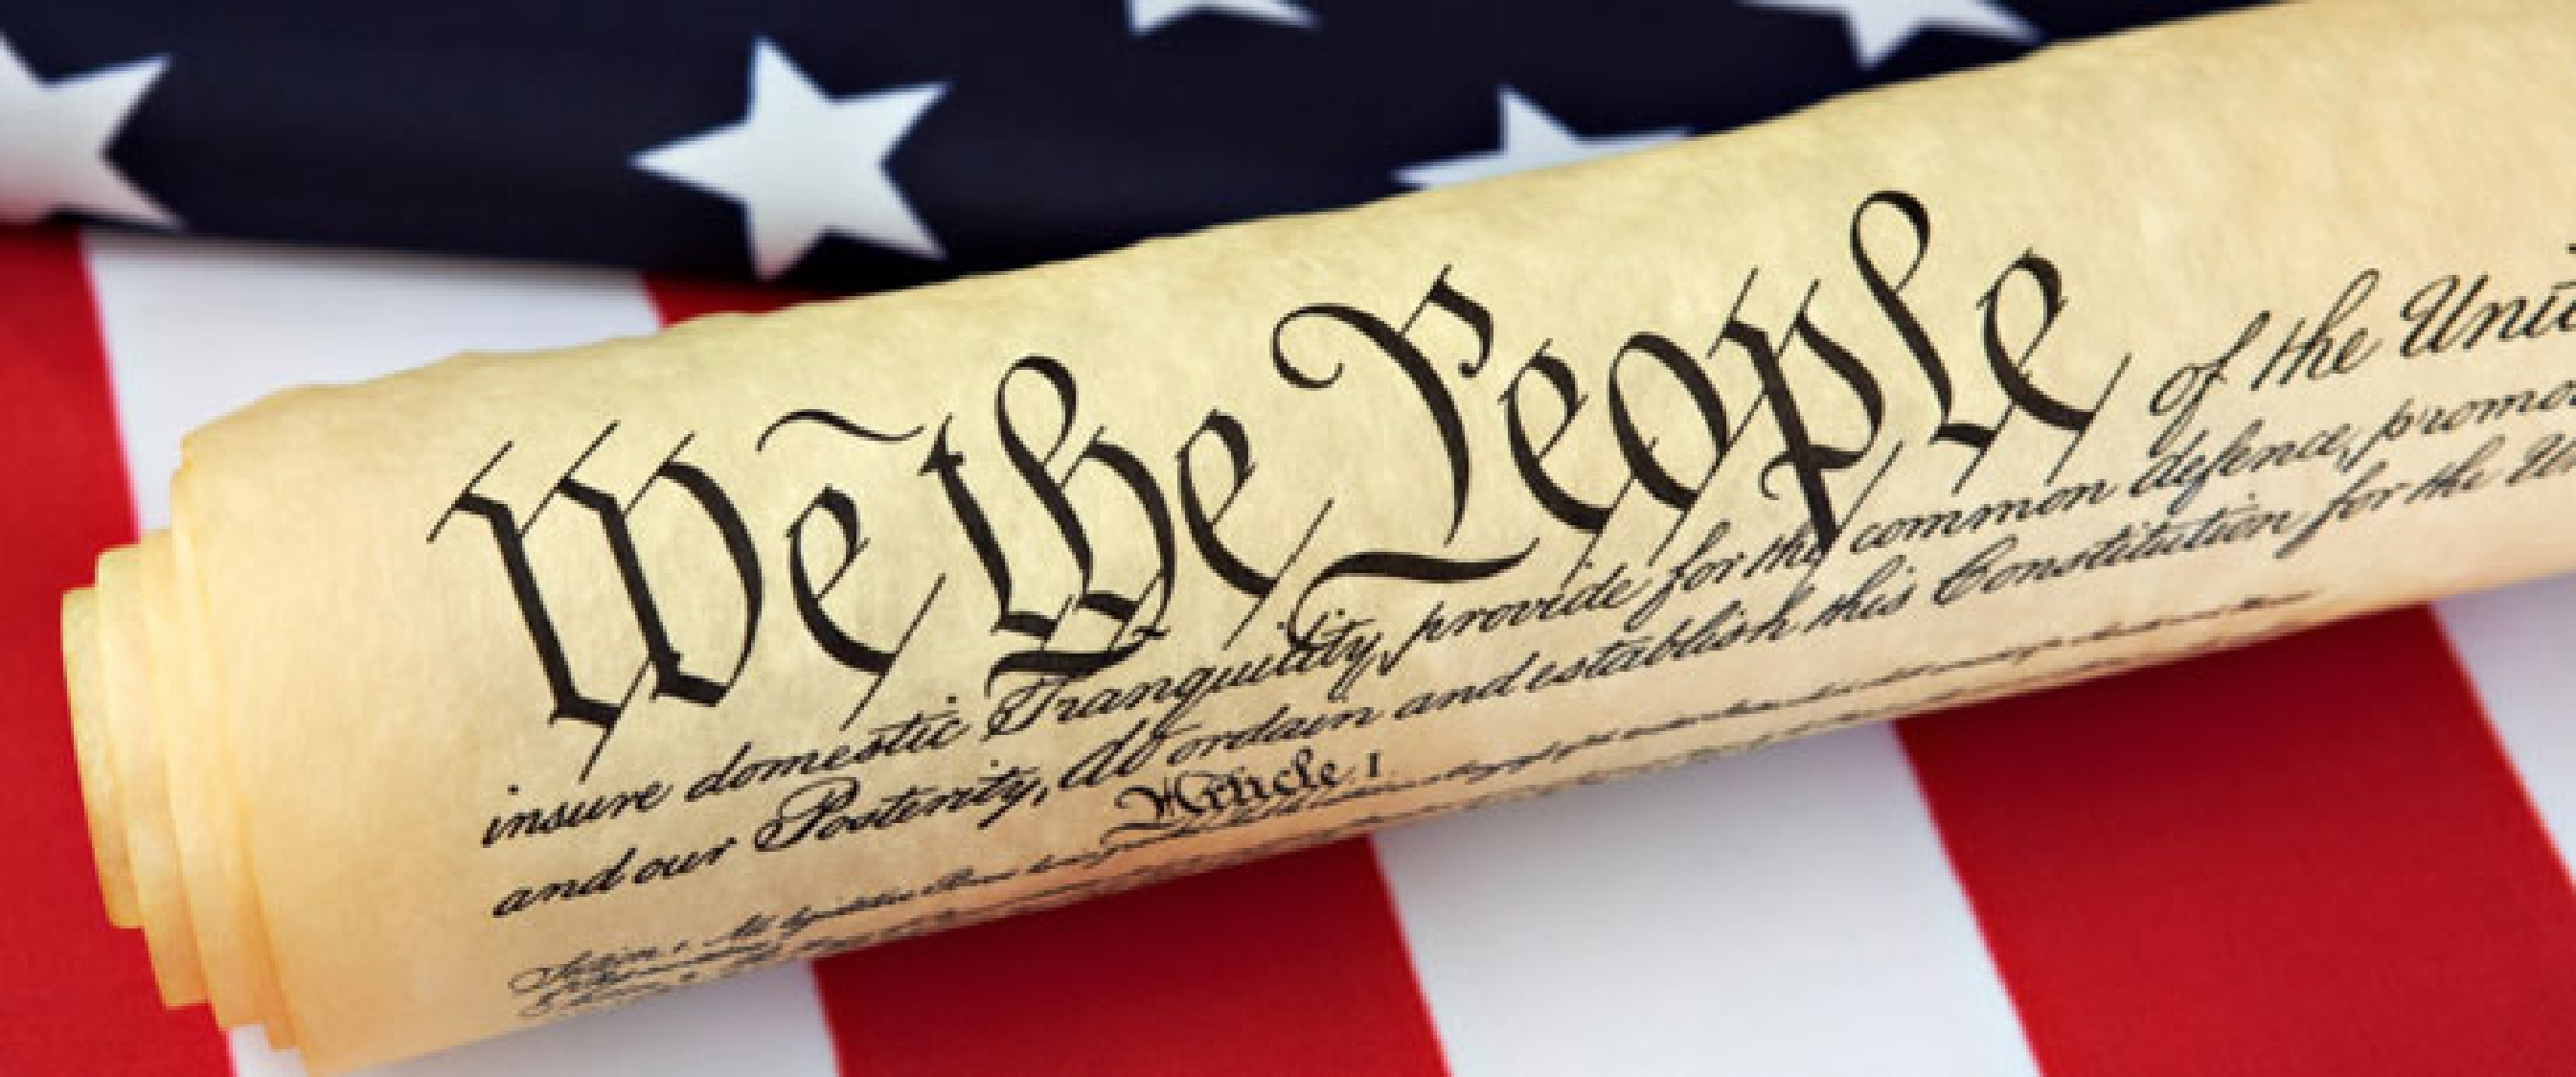 """we the people of the united """"we the people of the united states, in order to form a more perfect union, establish justice, insure domestic tranquility, provide for the common defence, promote the general welfare,."""